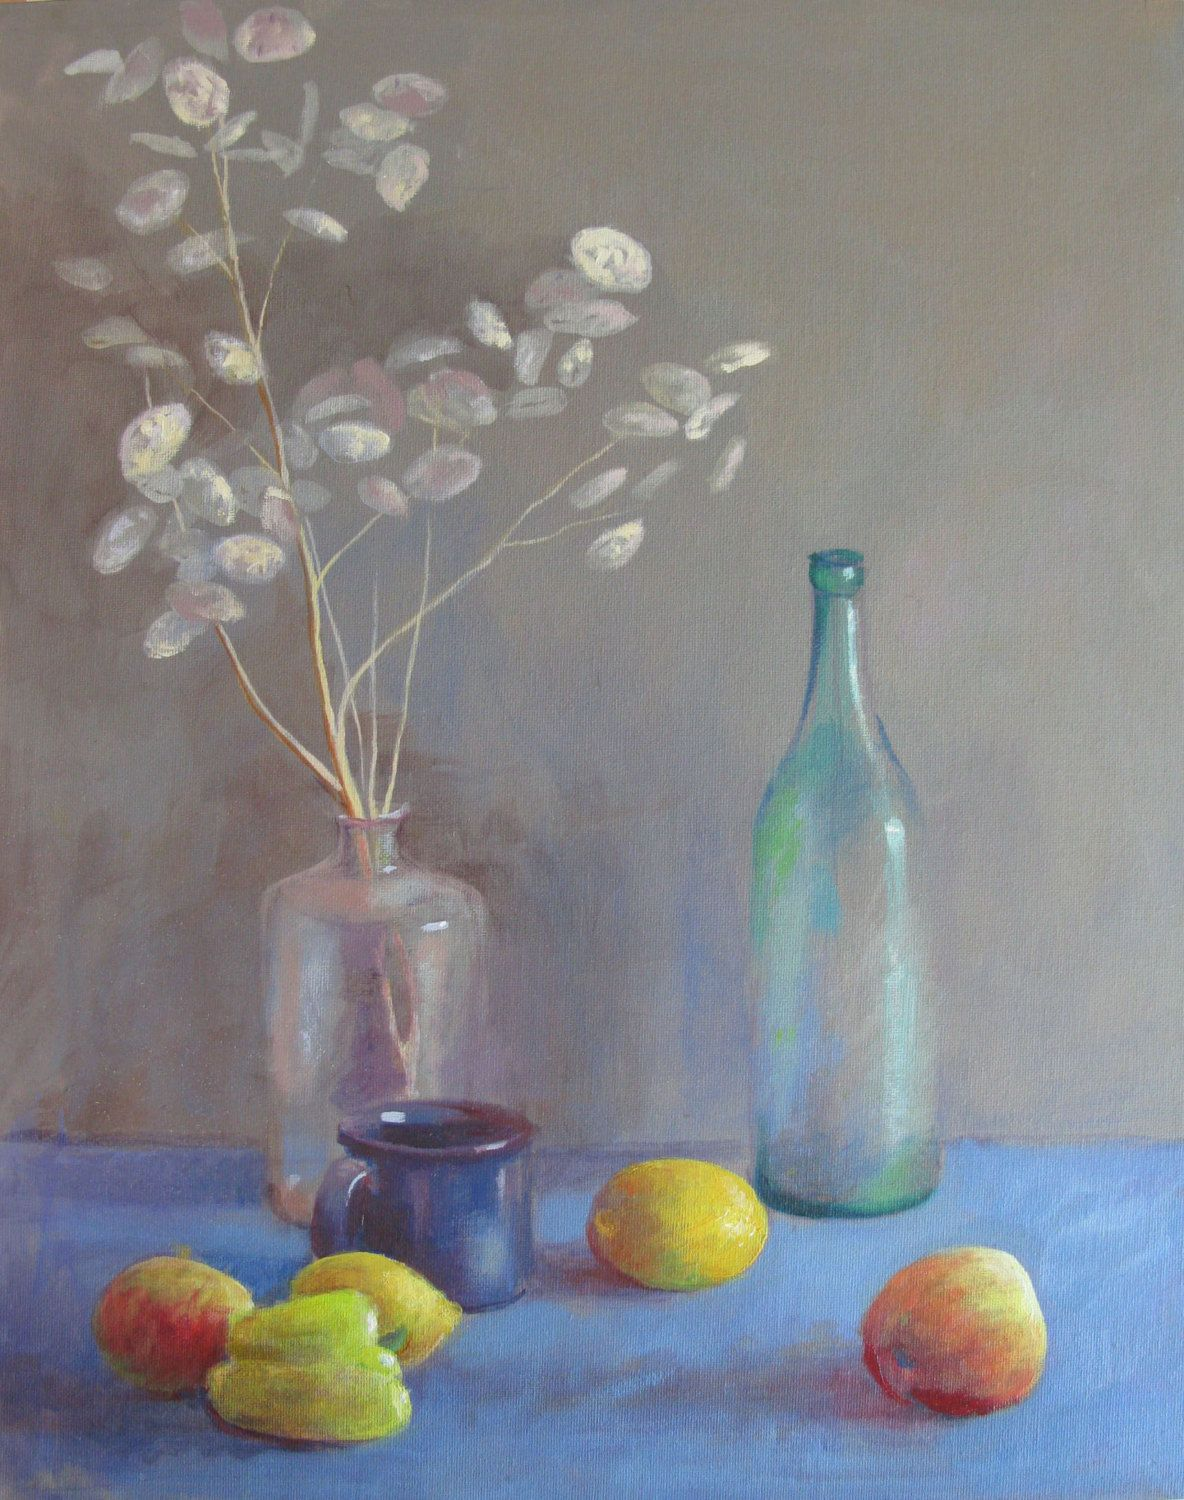 Still Life with Silver Flowers by SoniaBacchusArt on Etsy